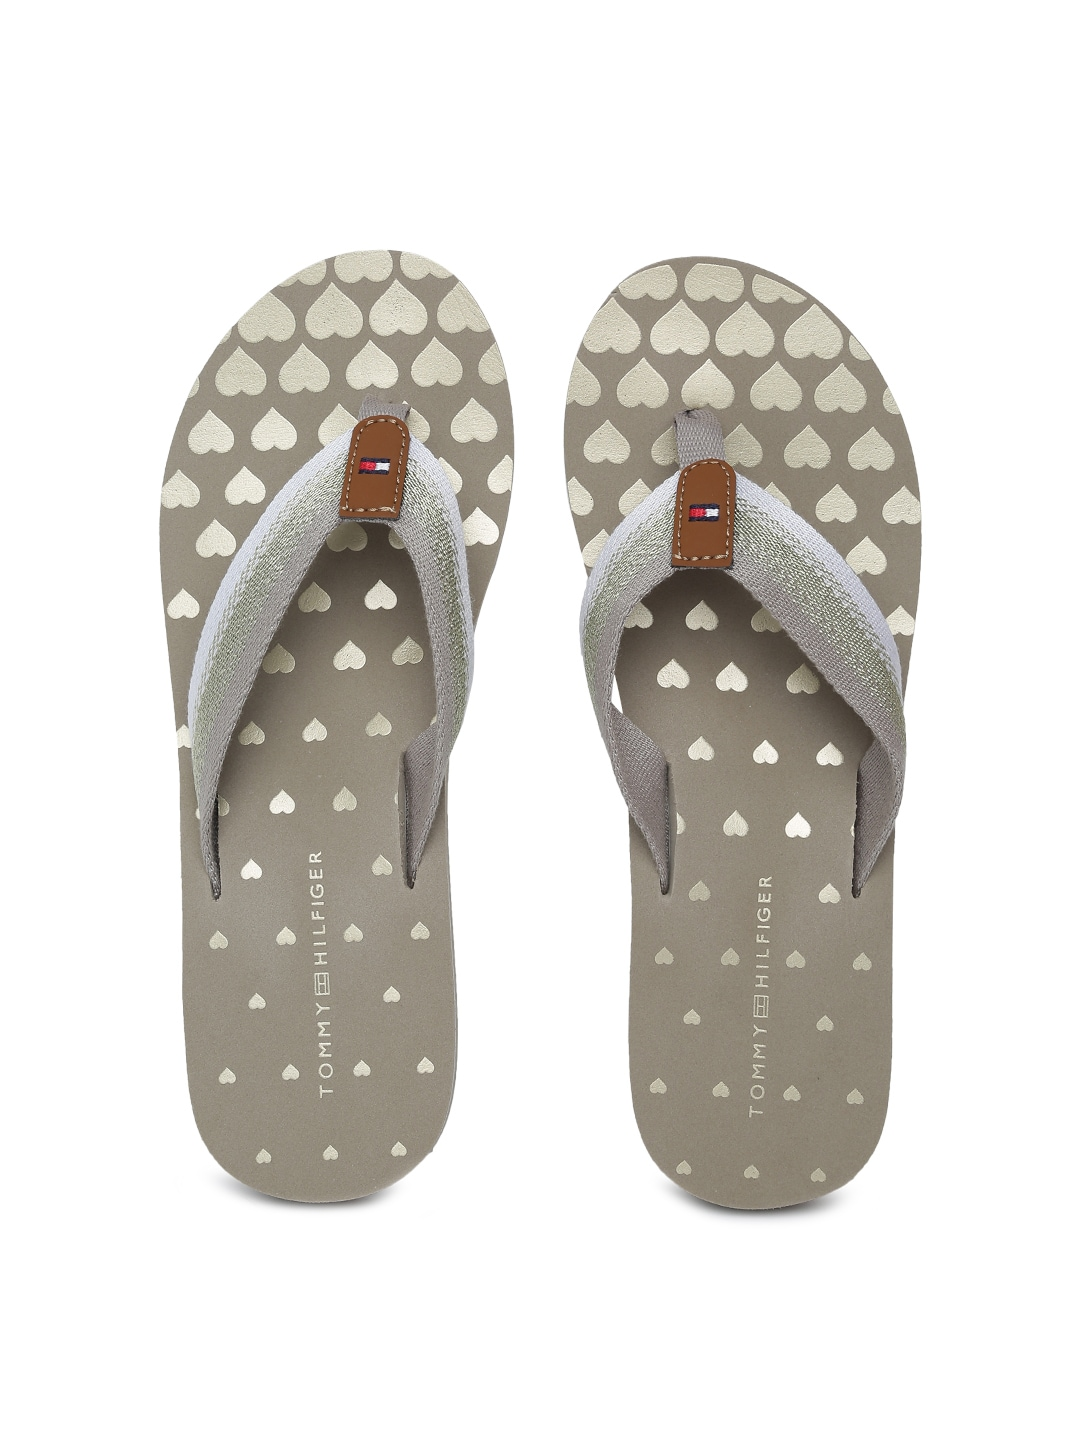 6616f49ca6bc6d Slippers - Buy Slippers Online in India